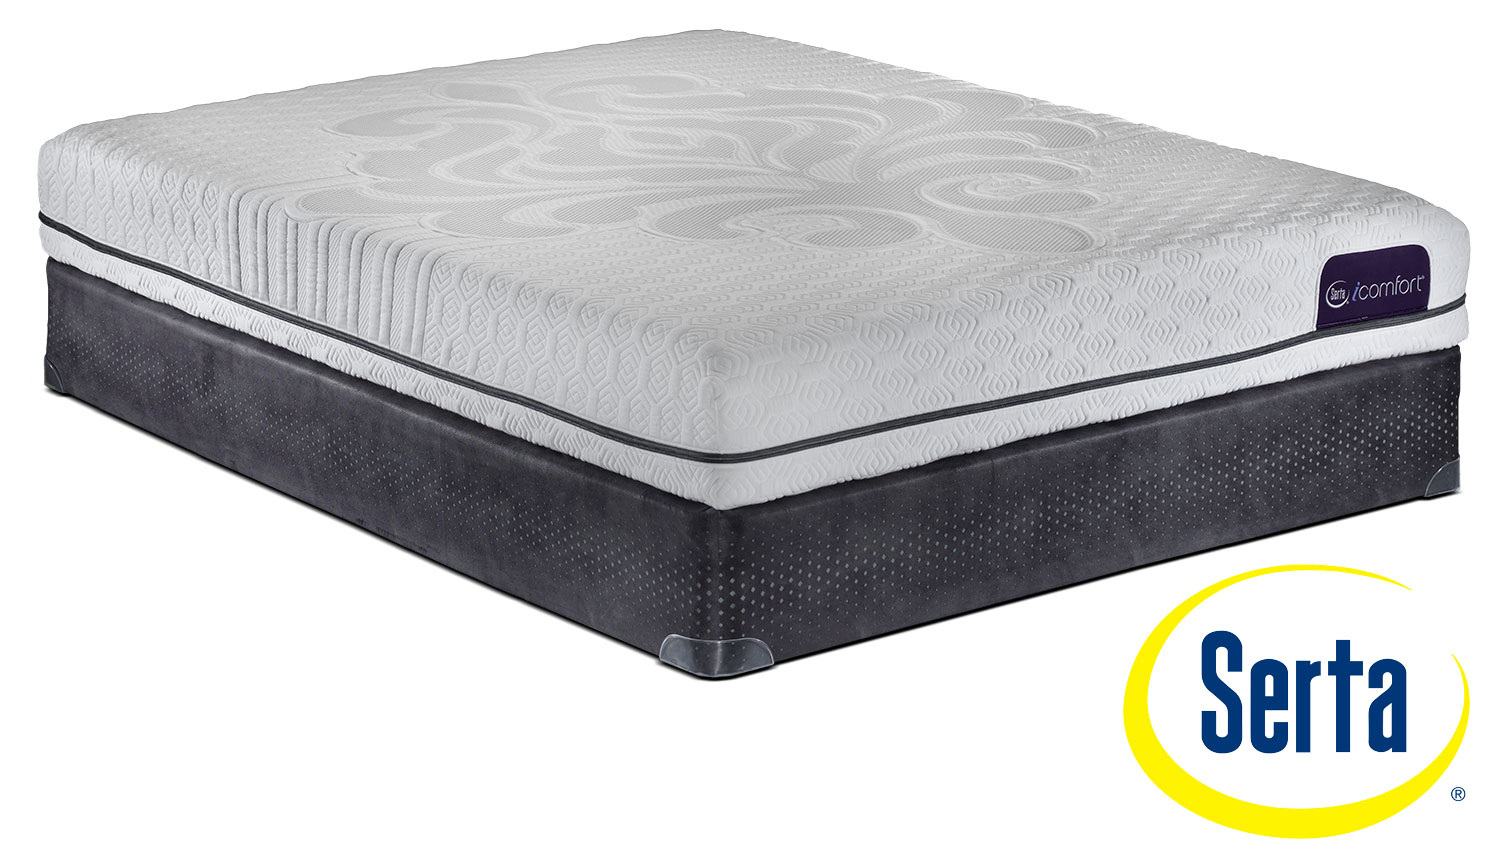 Serta iComfort Eco Levity Firm Full Mattress and Boxspring Set